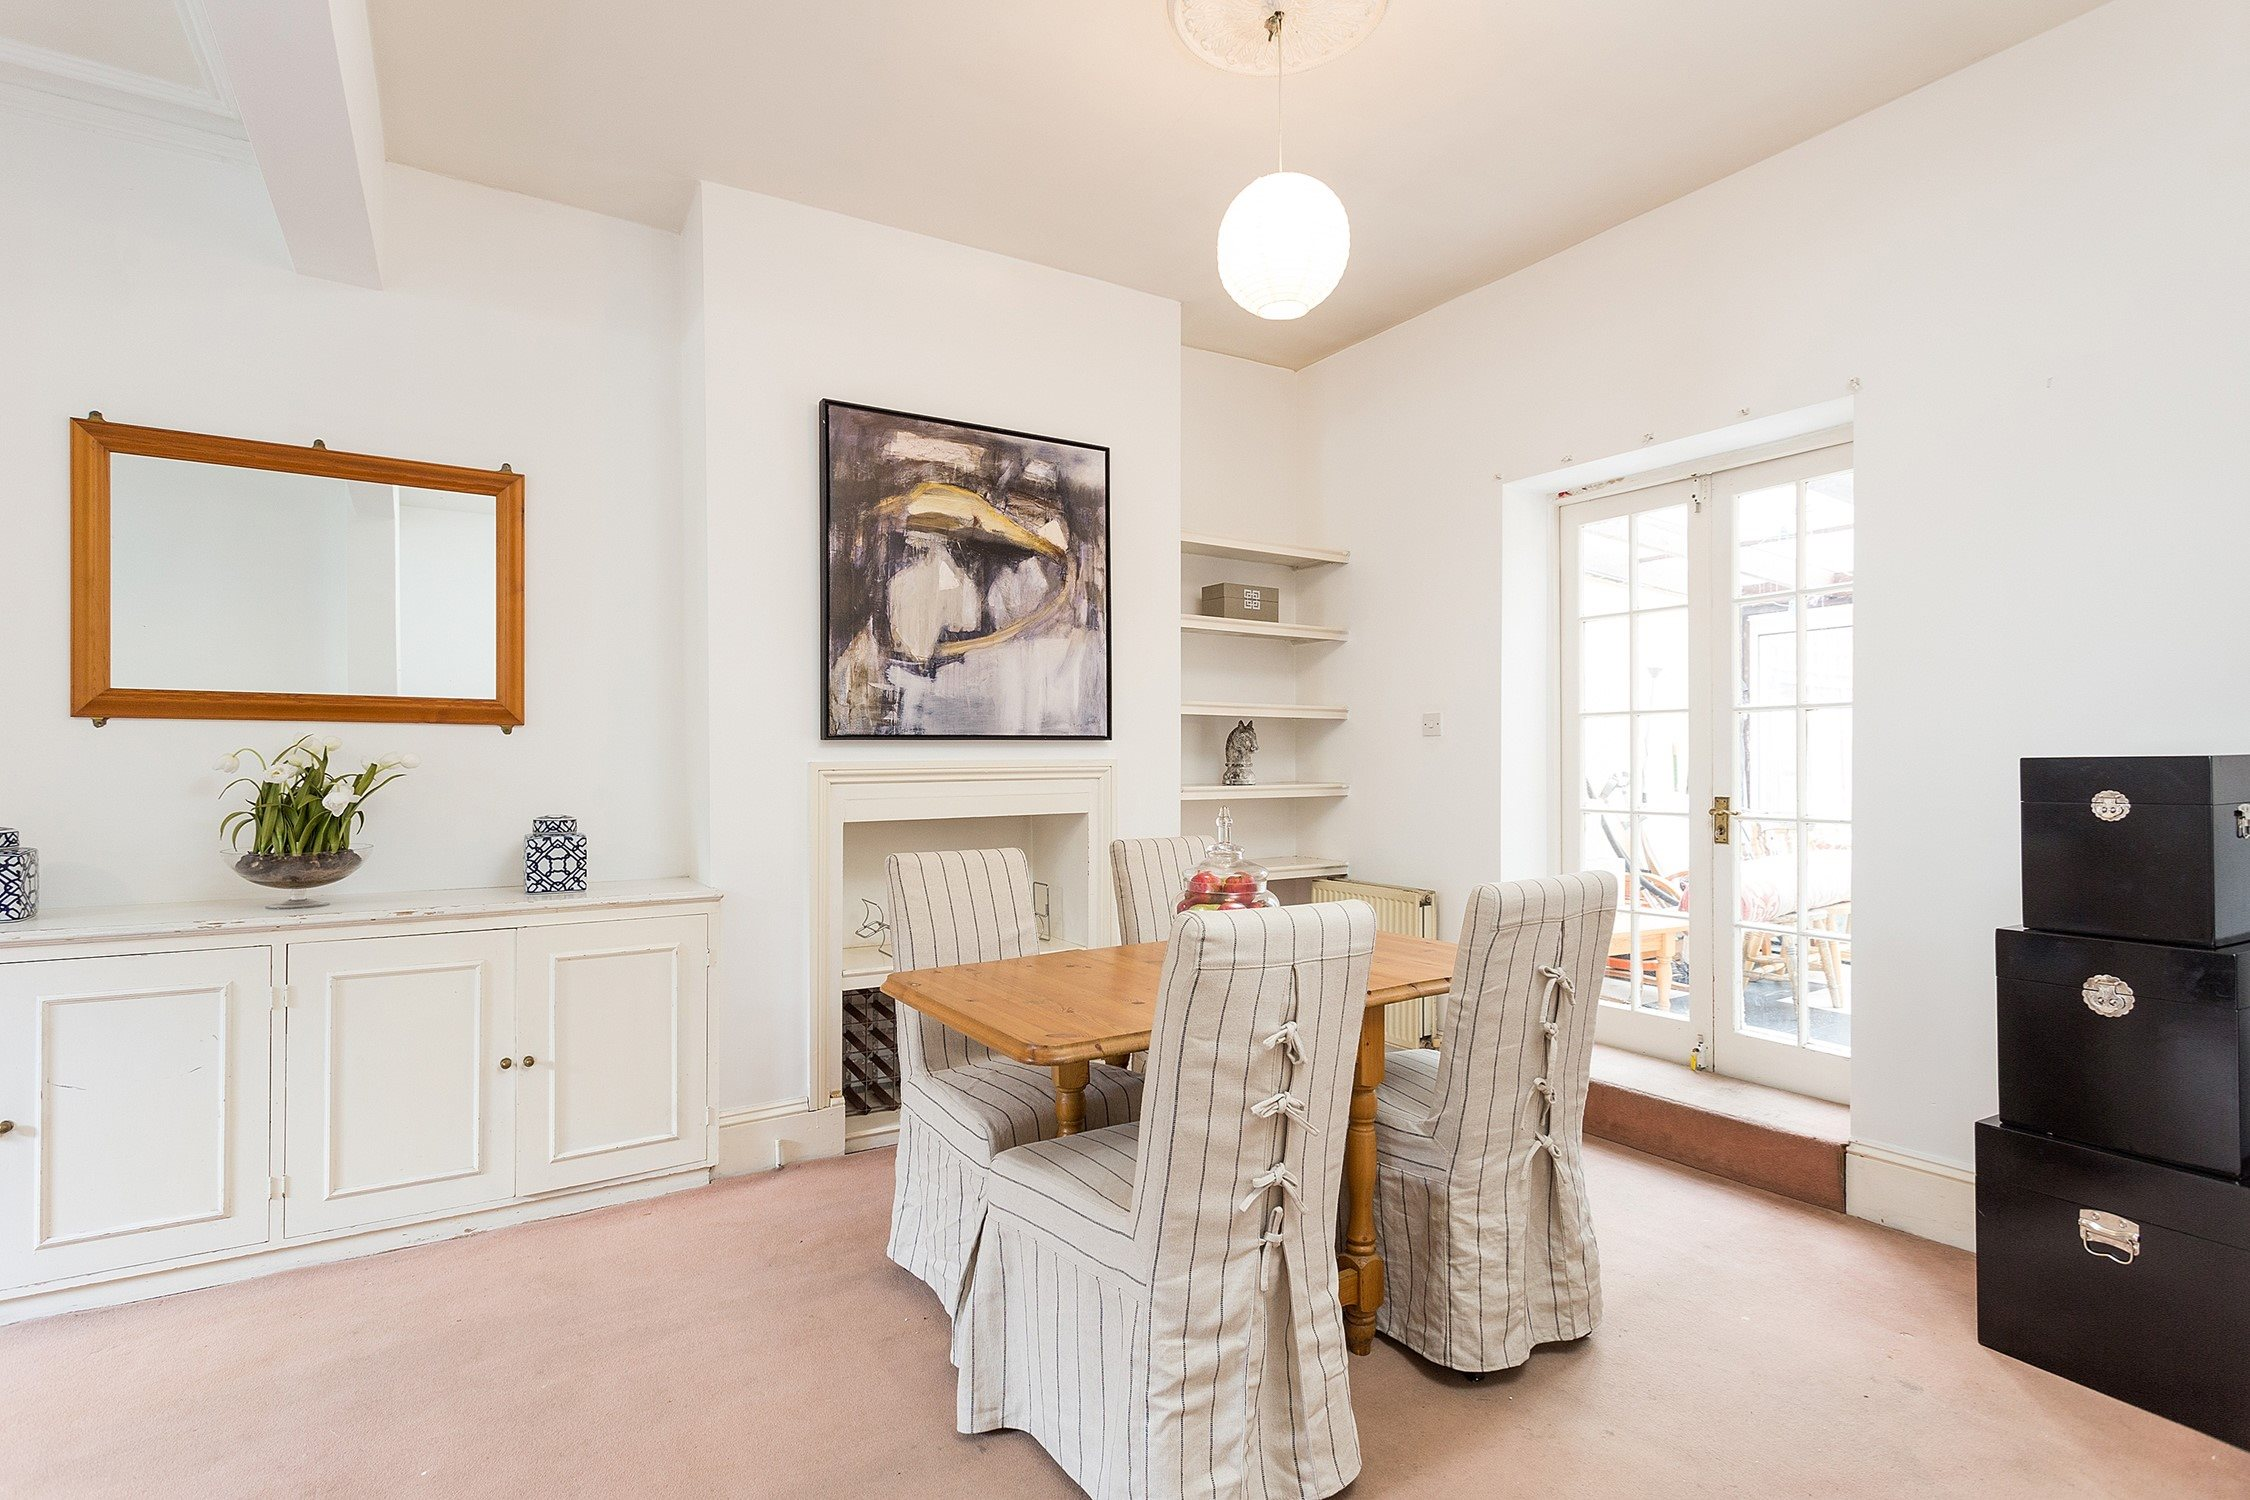 Portico 4 Bedroom House For Sale In Battersea Gowrie